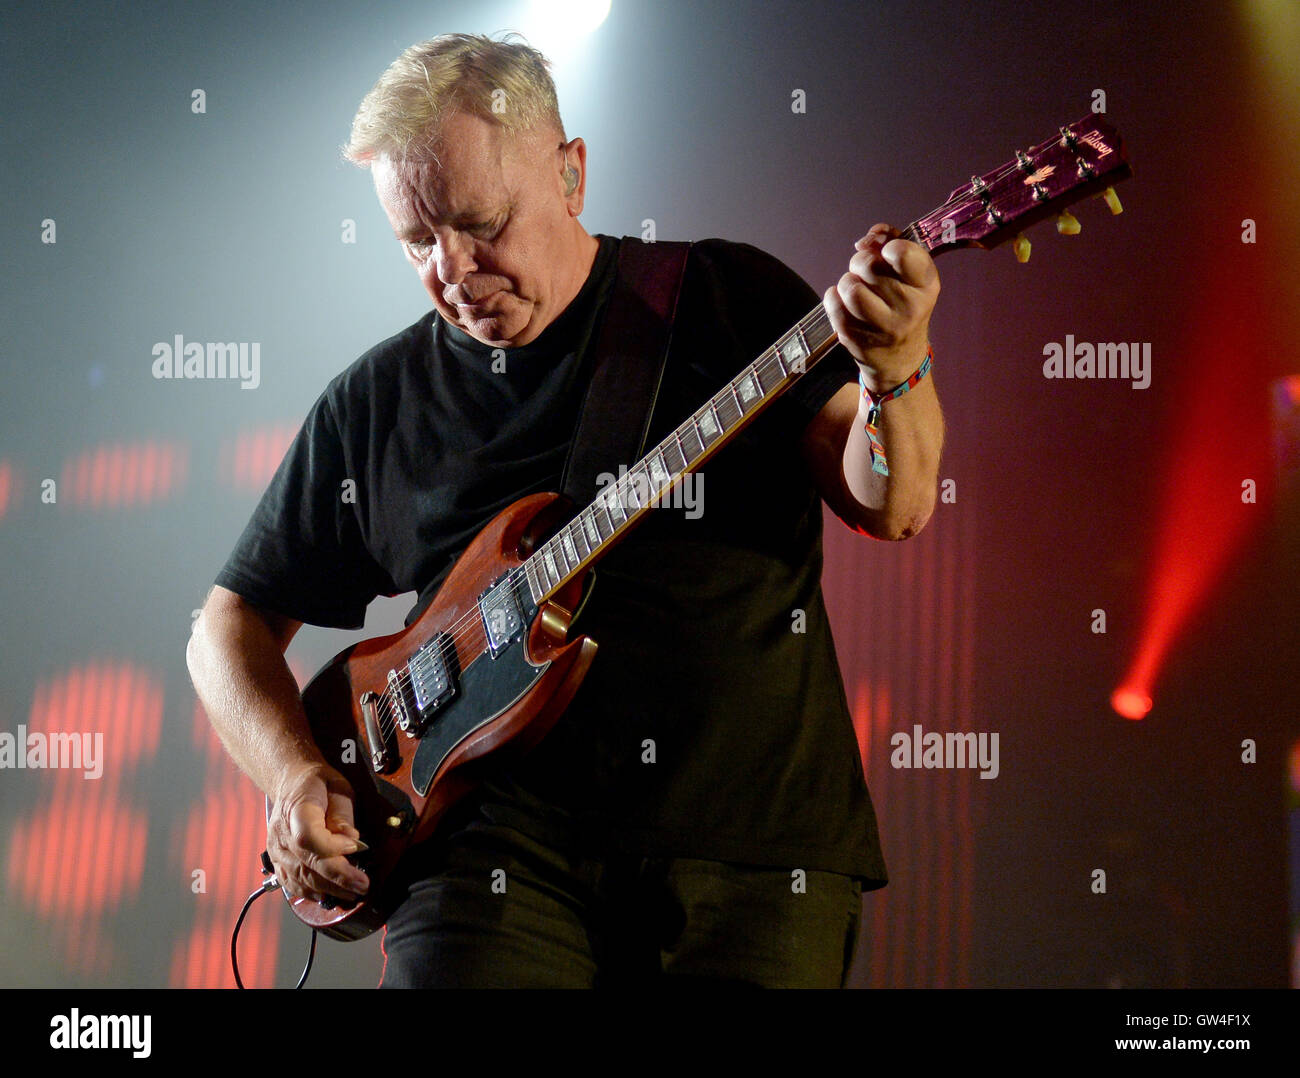 Berlin, Germany. 10th Sep, 2016. Singer Bernard Sumner of the band New Order performing at the music festival Lollapalooza - Stock Image